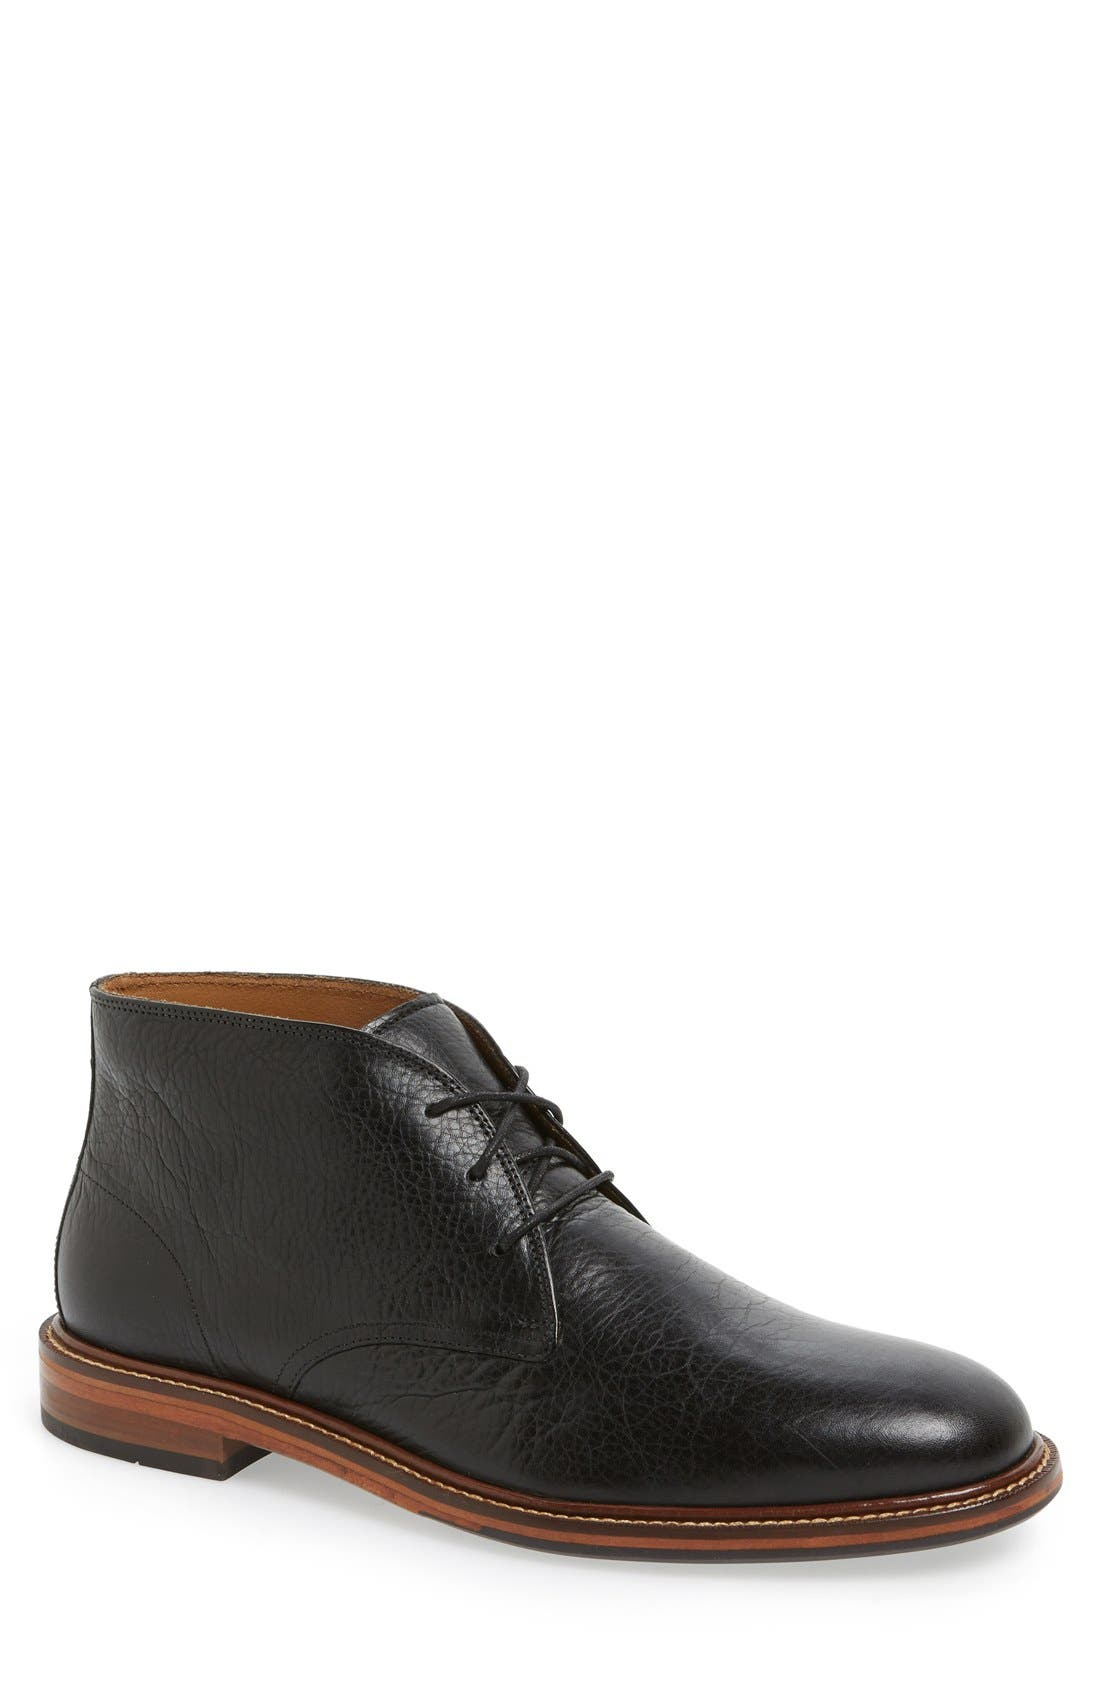 'Barron' Chukka Boot,                             Main thumbnail 1, color,                             Black